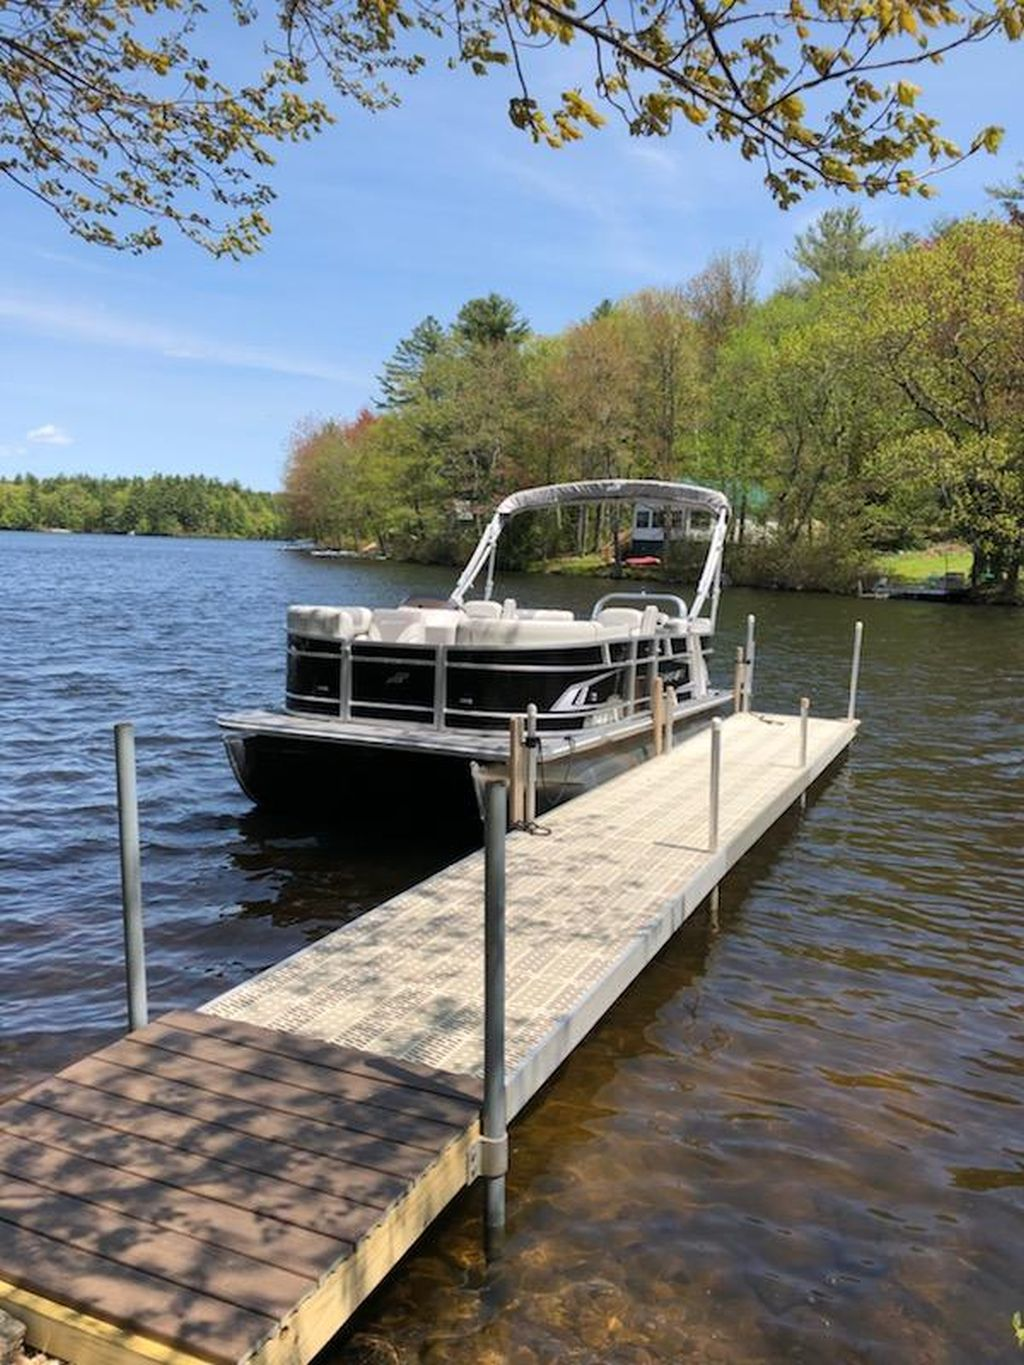 North River Lake in Northwood, NH today. It's an EX 20 R model with 90hp E-Tec. 1.jpg